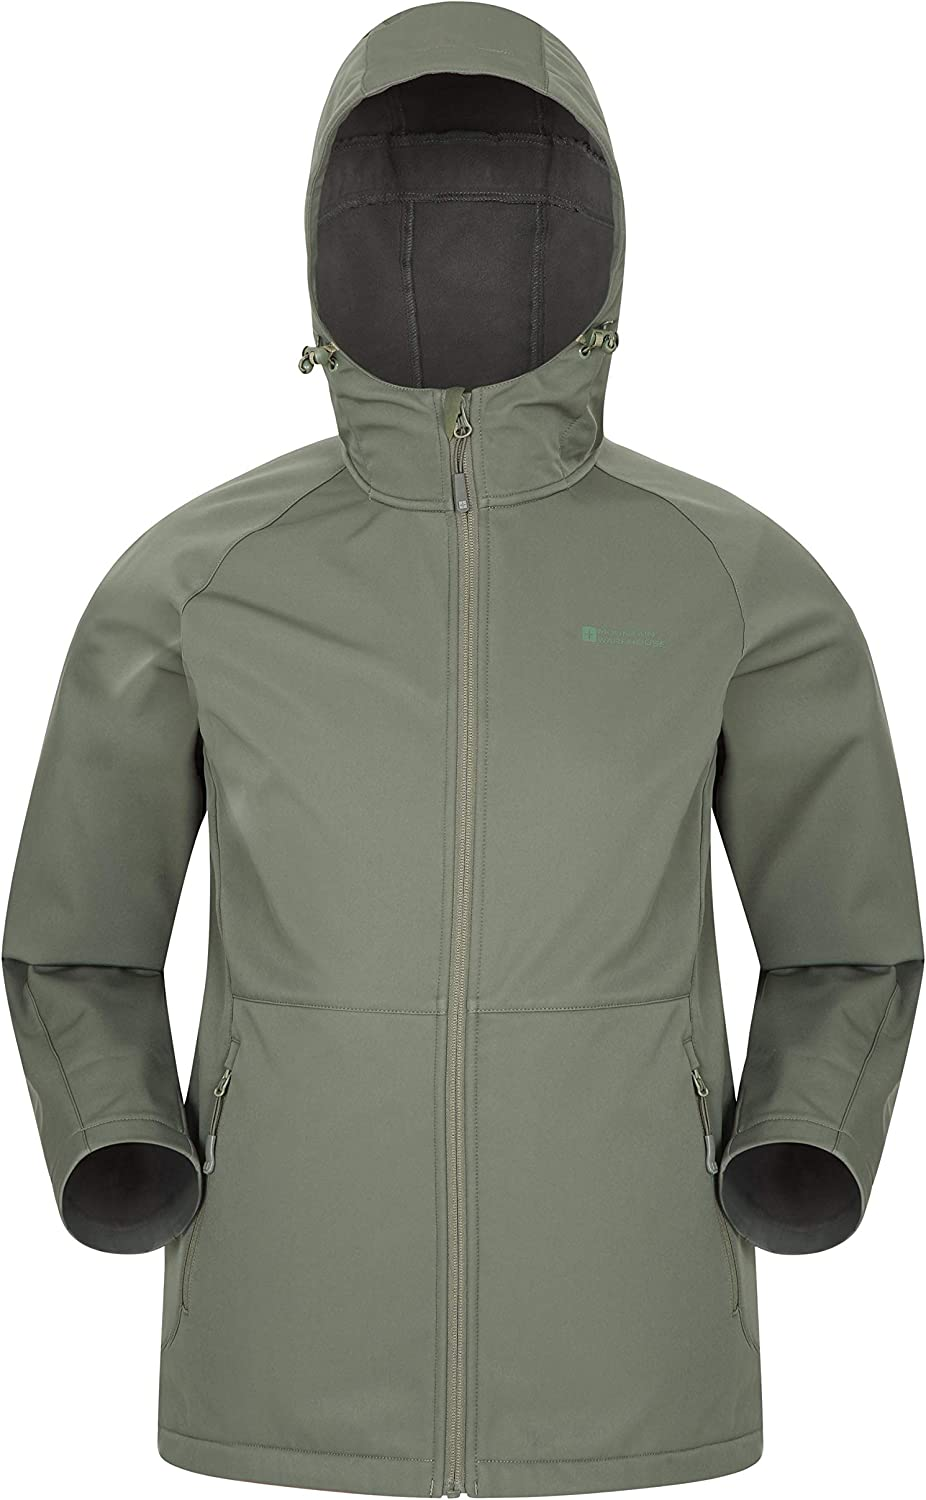 Mountain Warehouse Mens Padded Softshell Water Resistan Jacket Dedication Challenge the lowest price of Japan -